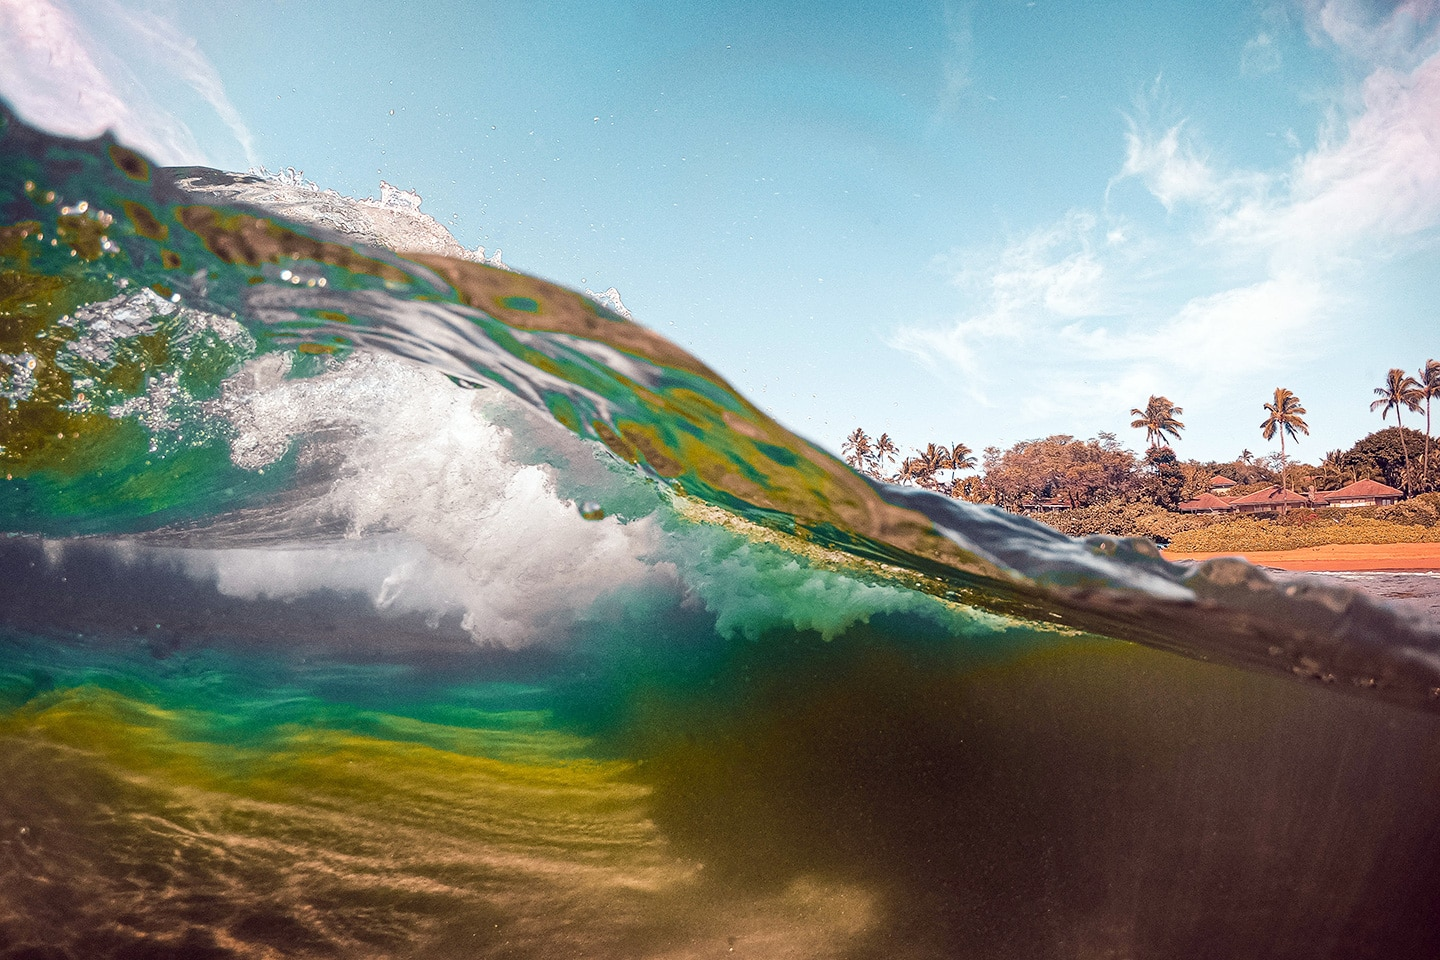 half underwater photo with waves and the beach in the background